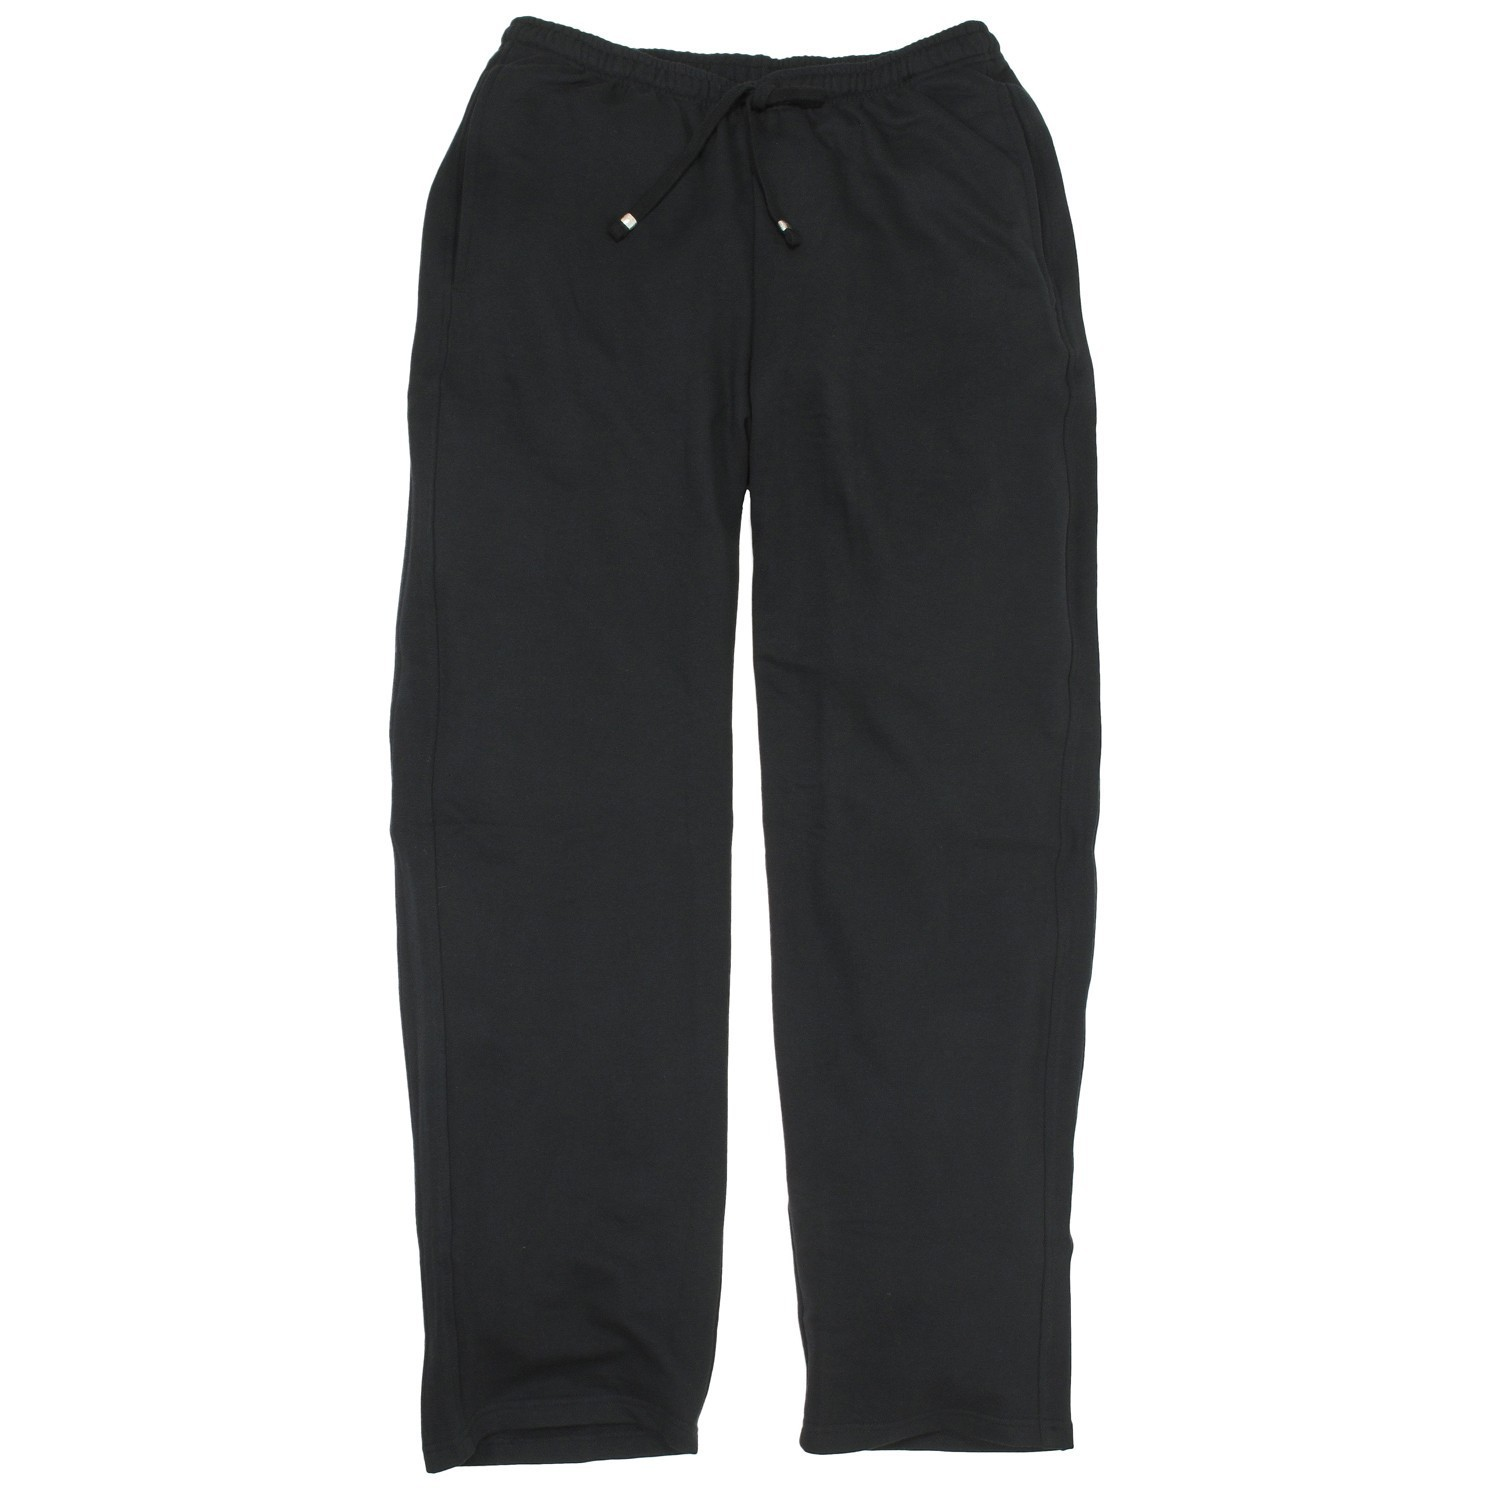 Detail Image to Black sweat pants by Redfield in plus sizes up to 8XL